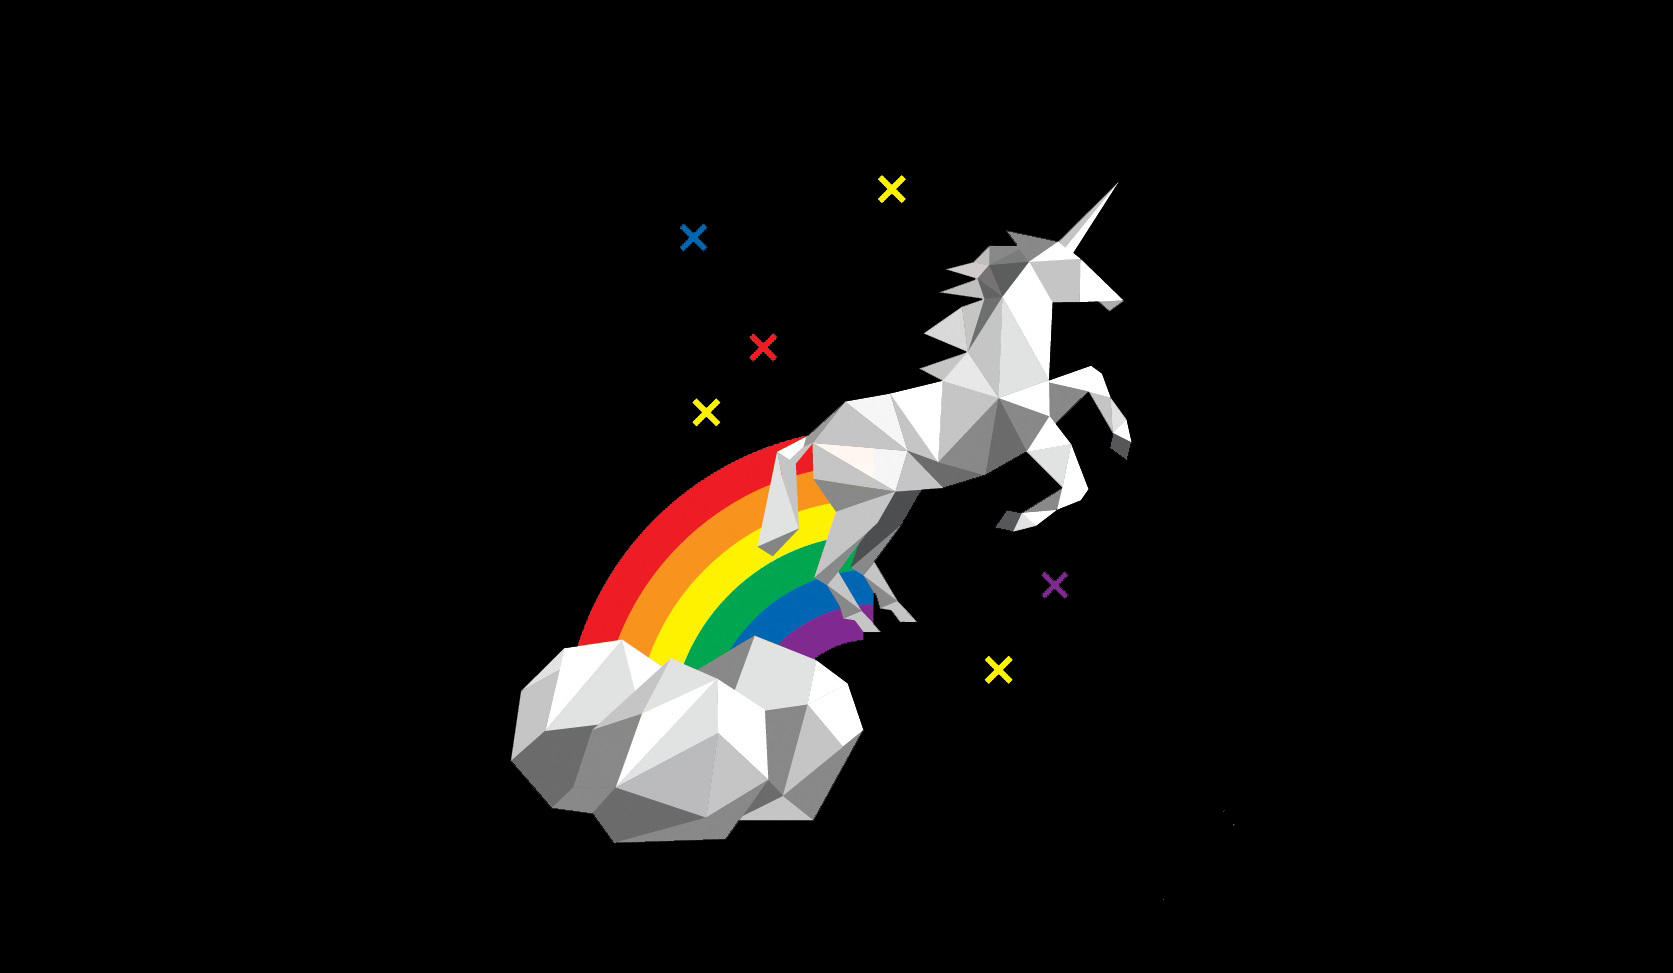 Unicorns amass $26.5bn in seeding funding since start of 2020, amid COVID-19 outbreak